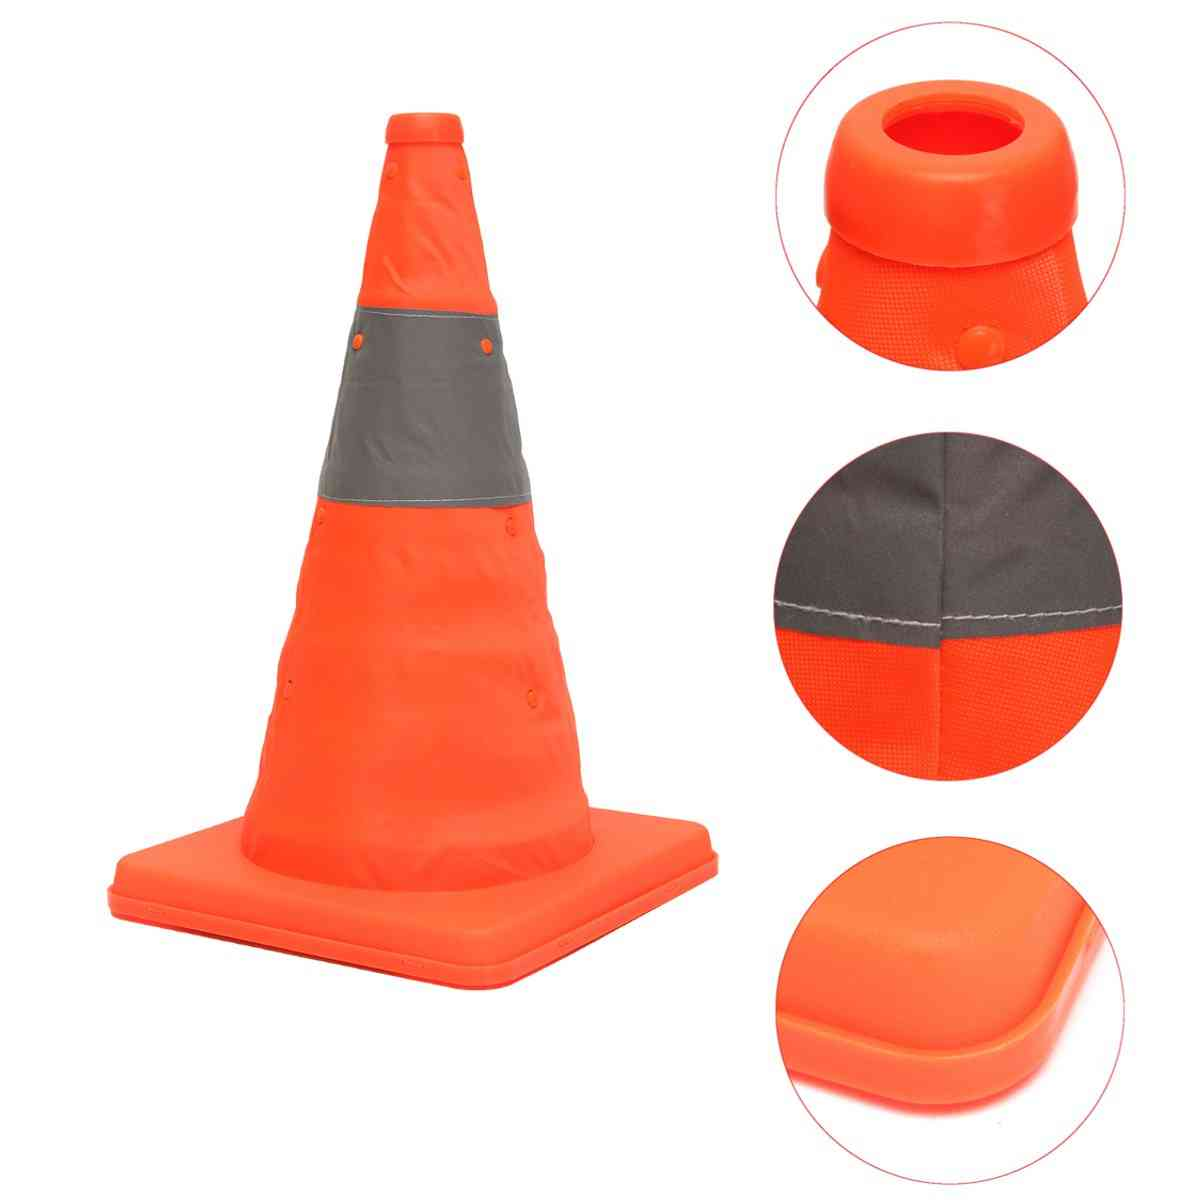 Folding Collapsible, Road Safety Cone For Traffic Pops-up Parking